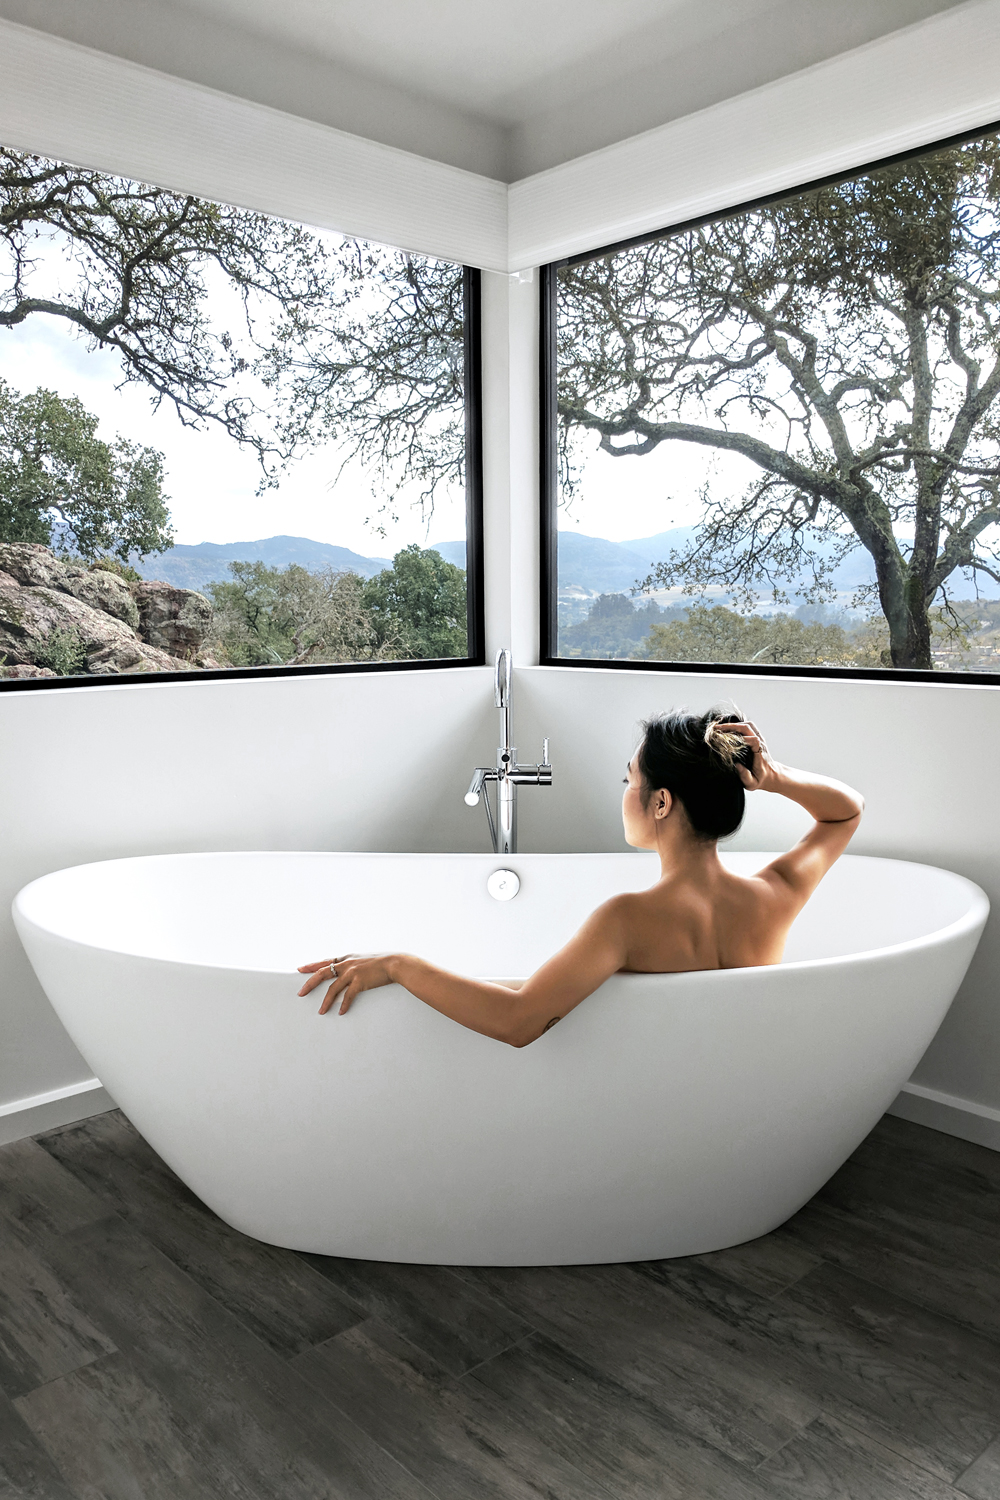 10napa-festnest-italicswine-bath-spa-travel